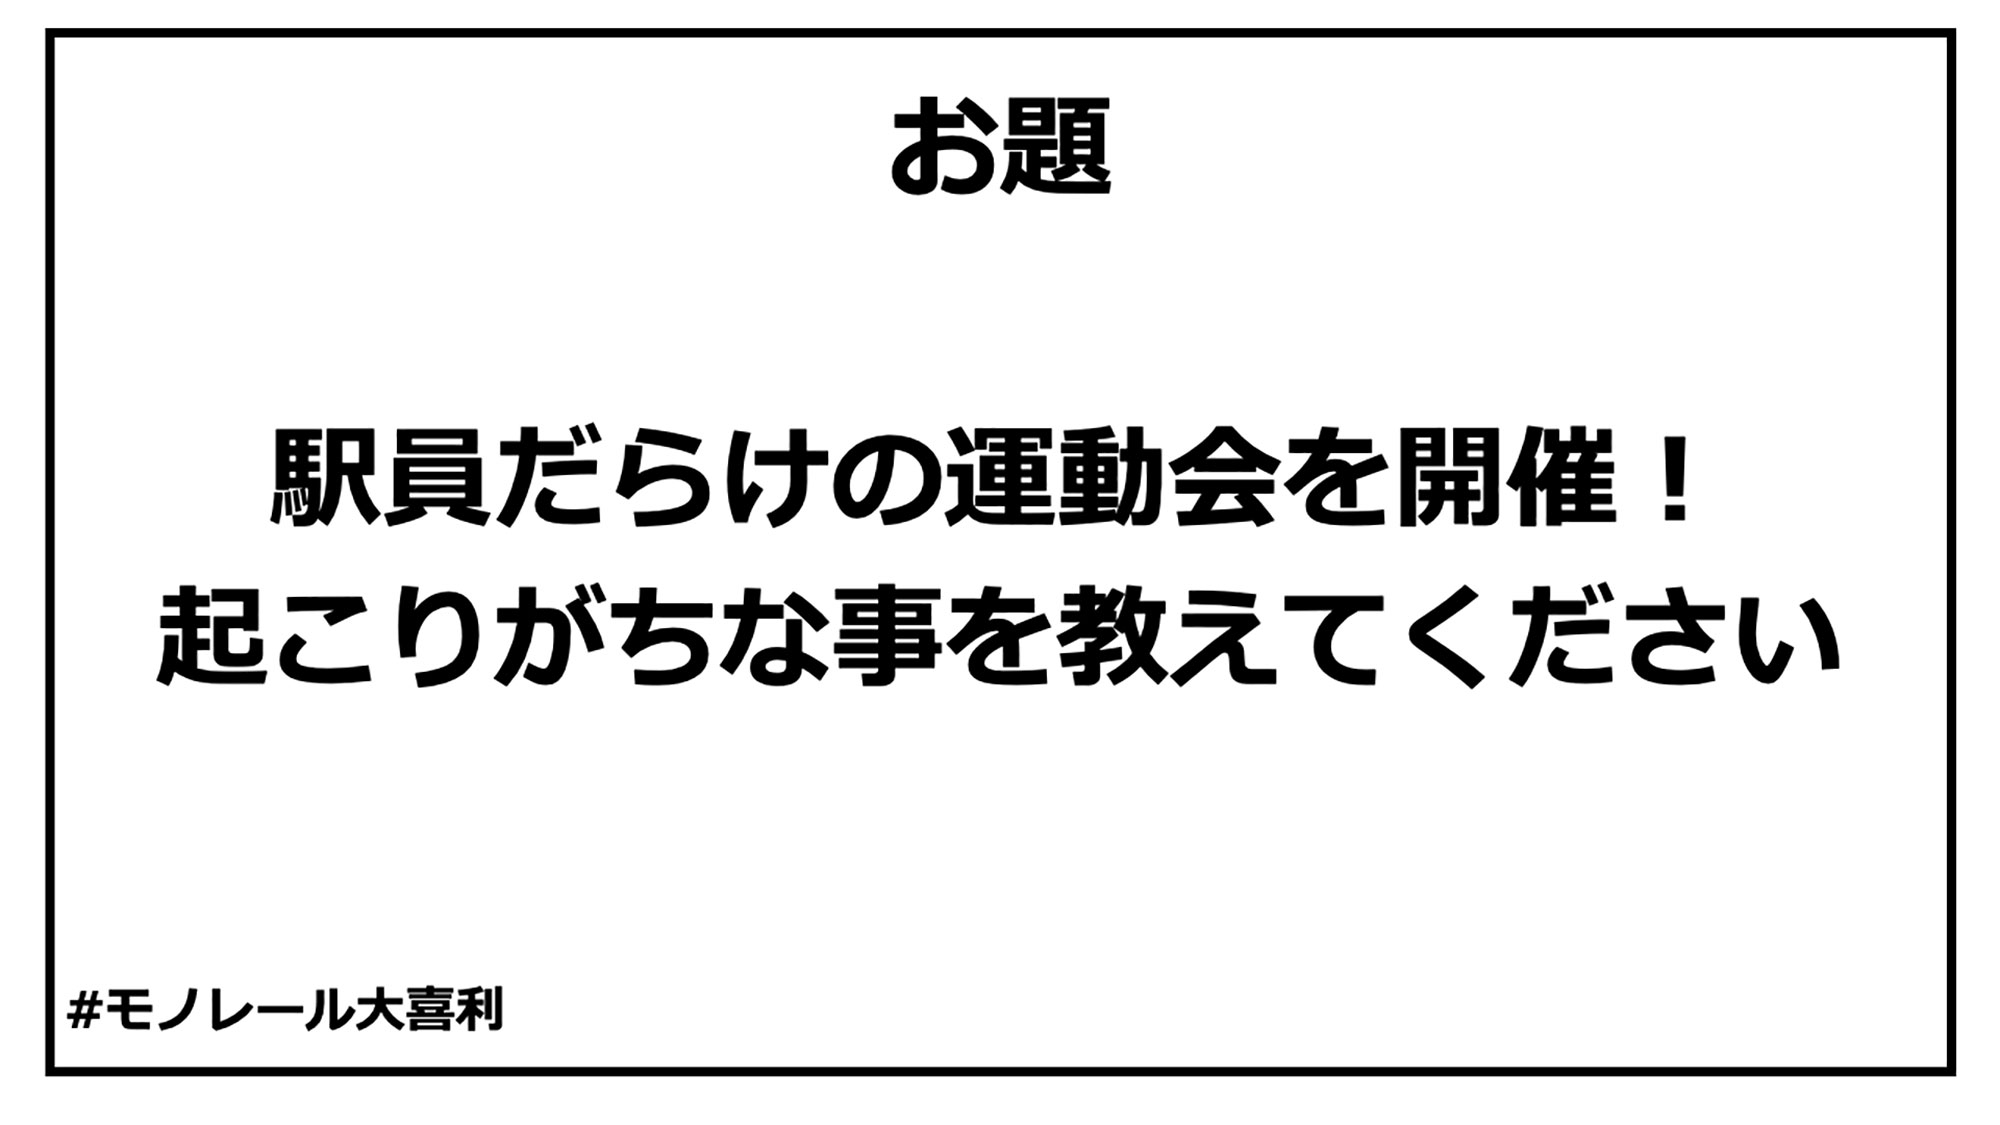 ogiri_answer_29_11.jpg